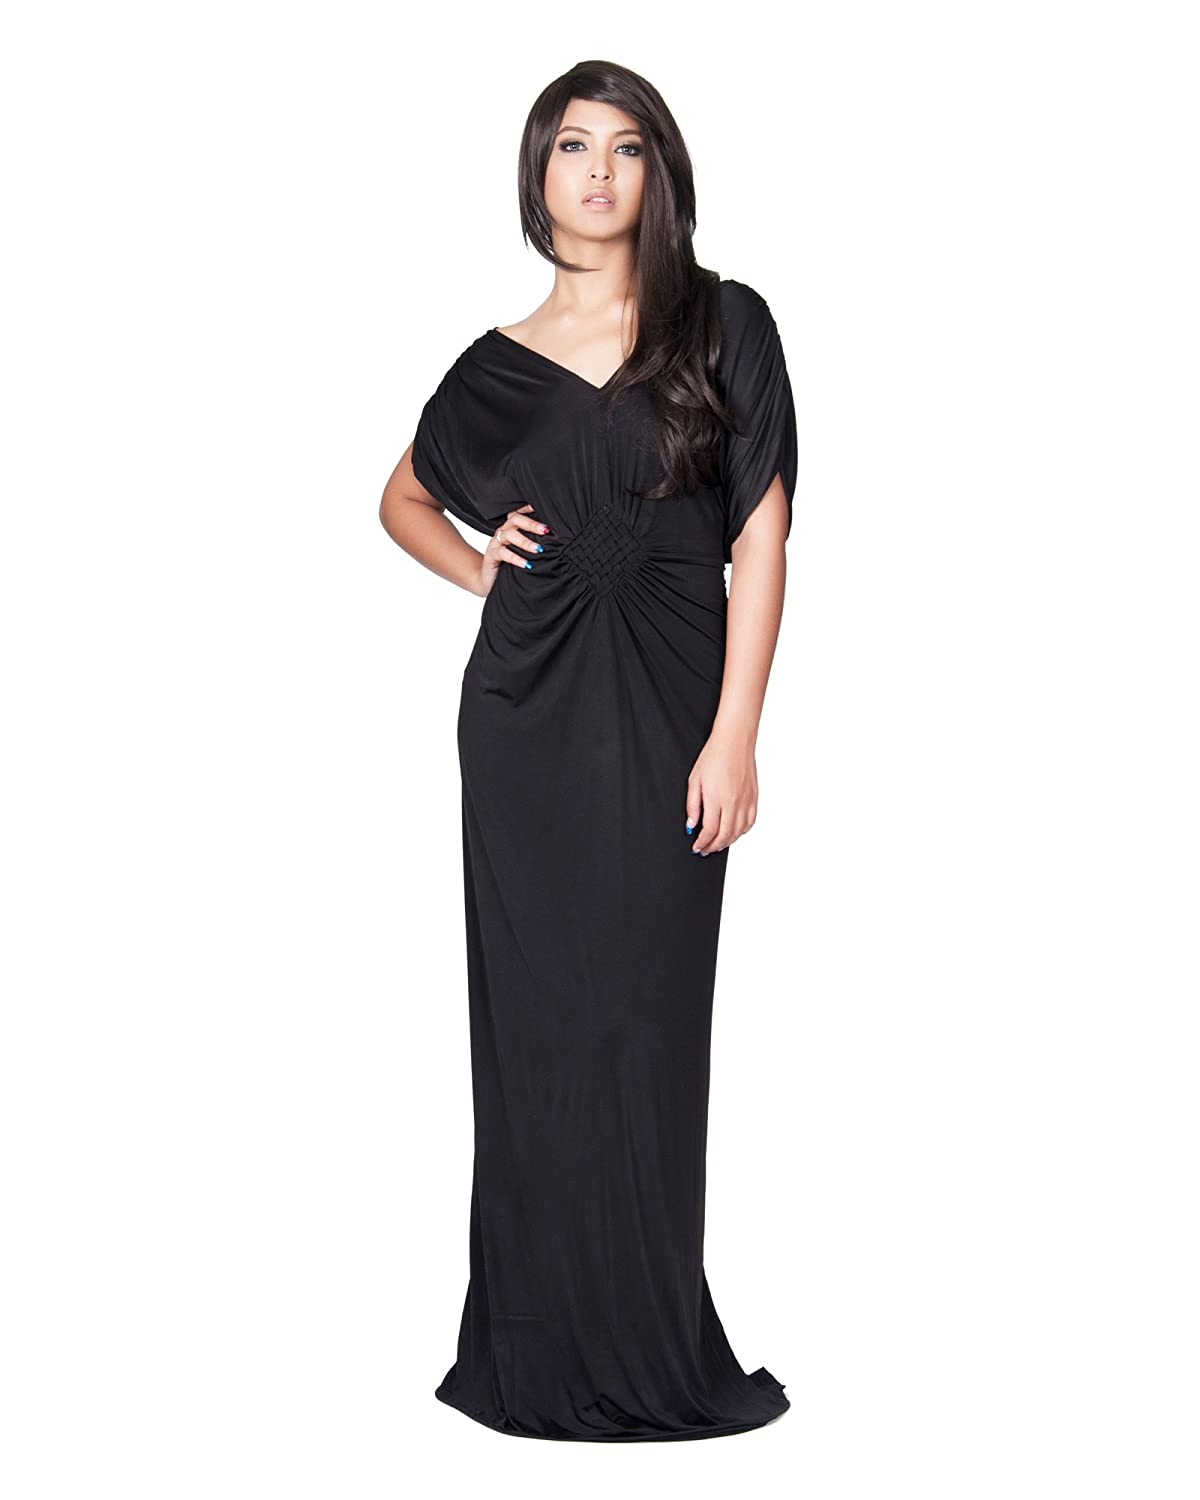 3165f4602a GARMENT CARE - Hand or machine washable. Can be dry-cleaned if desired.  PLUS SIZE - This great maxi dress design is also available in plus sizes